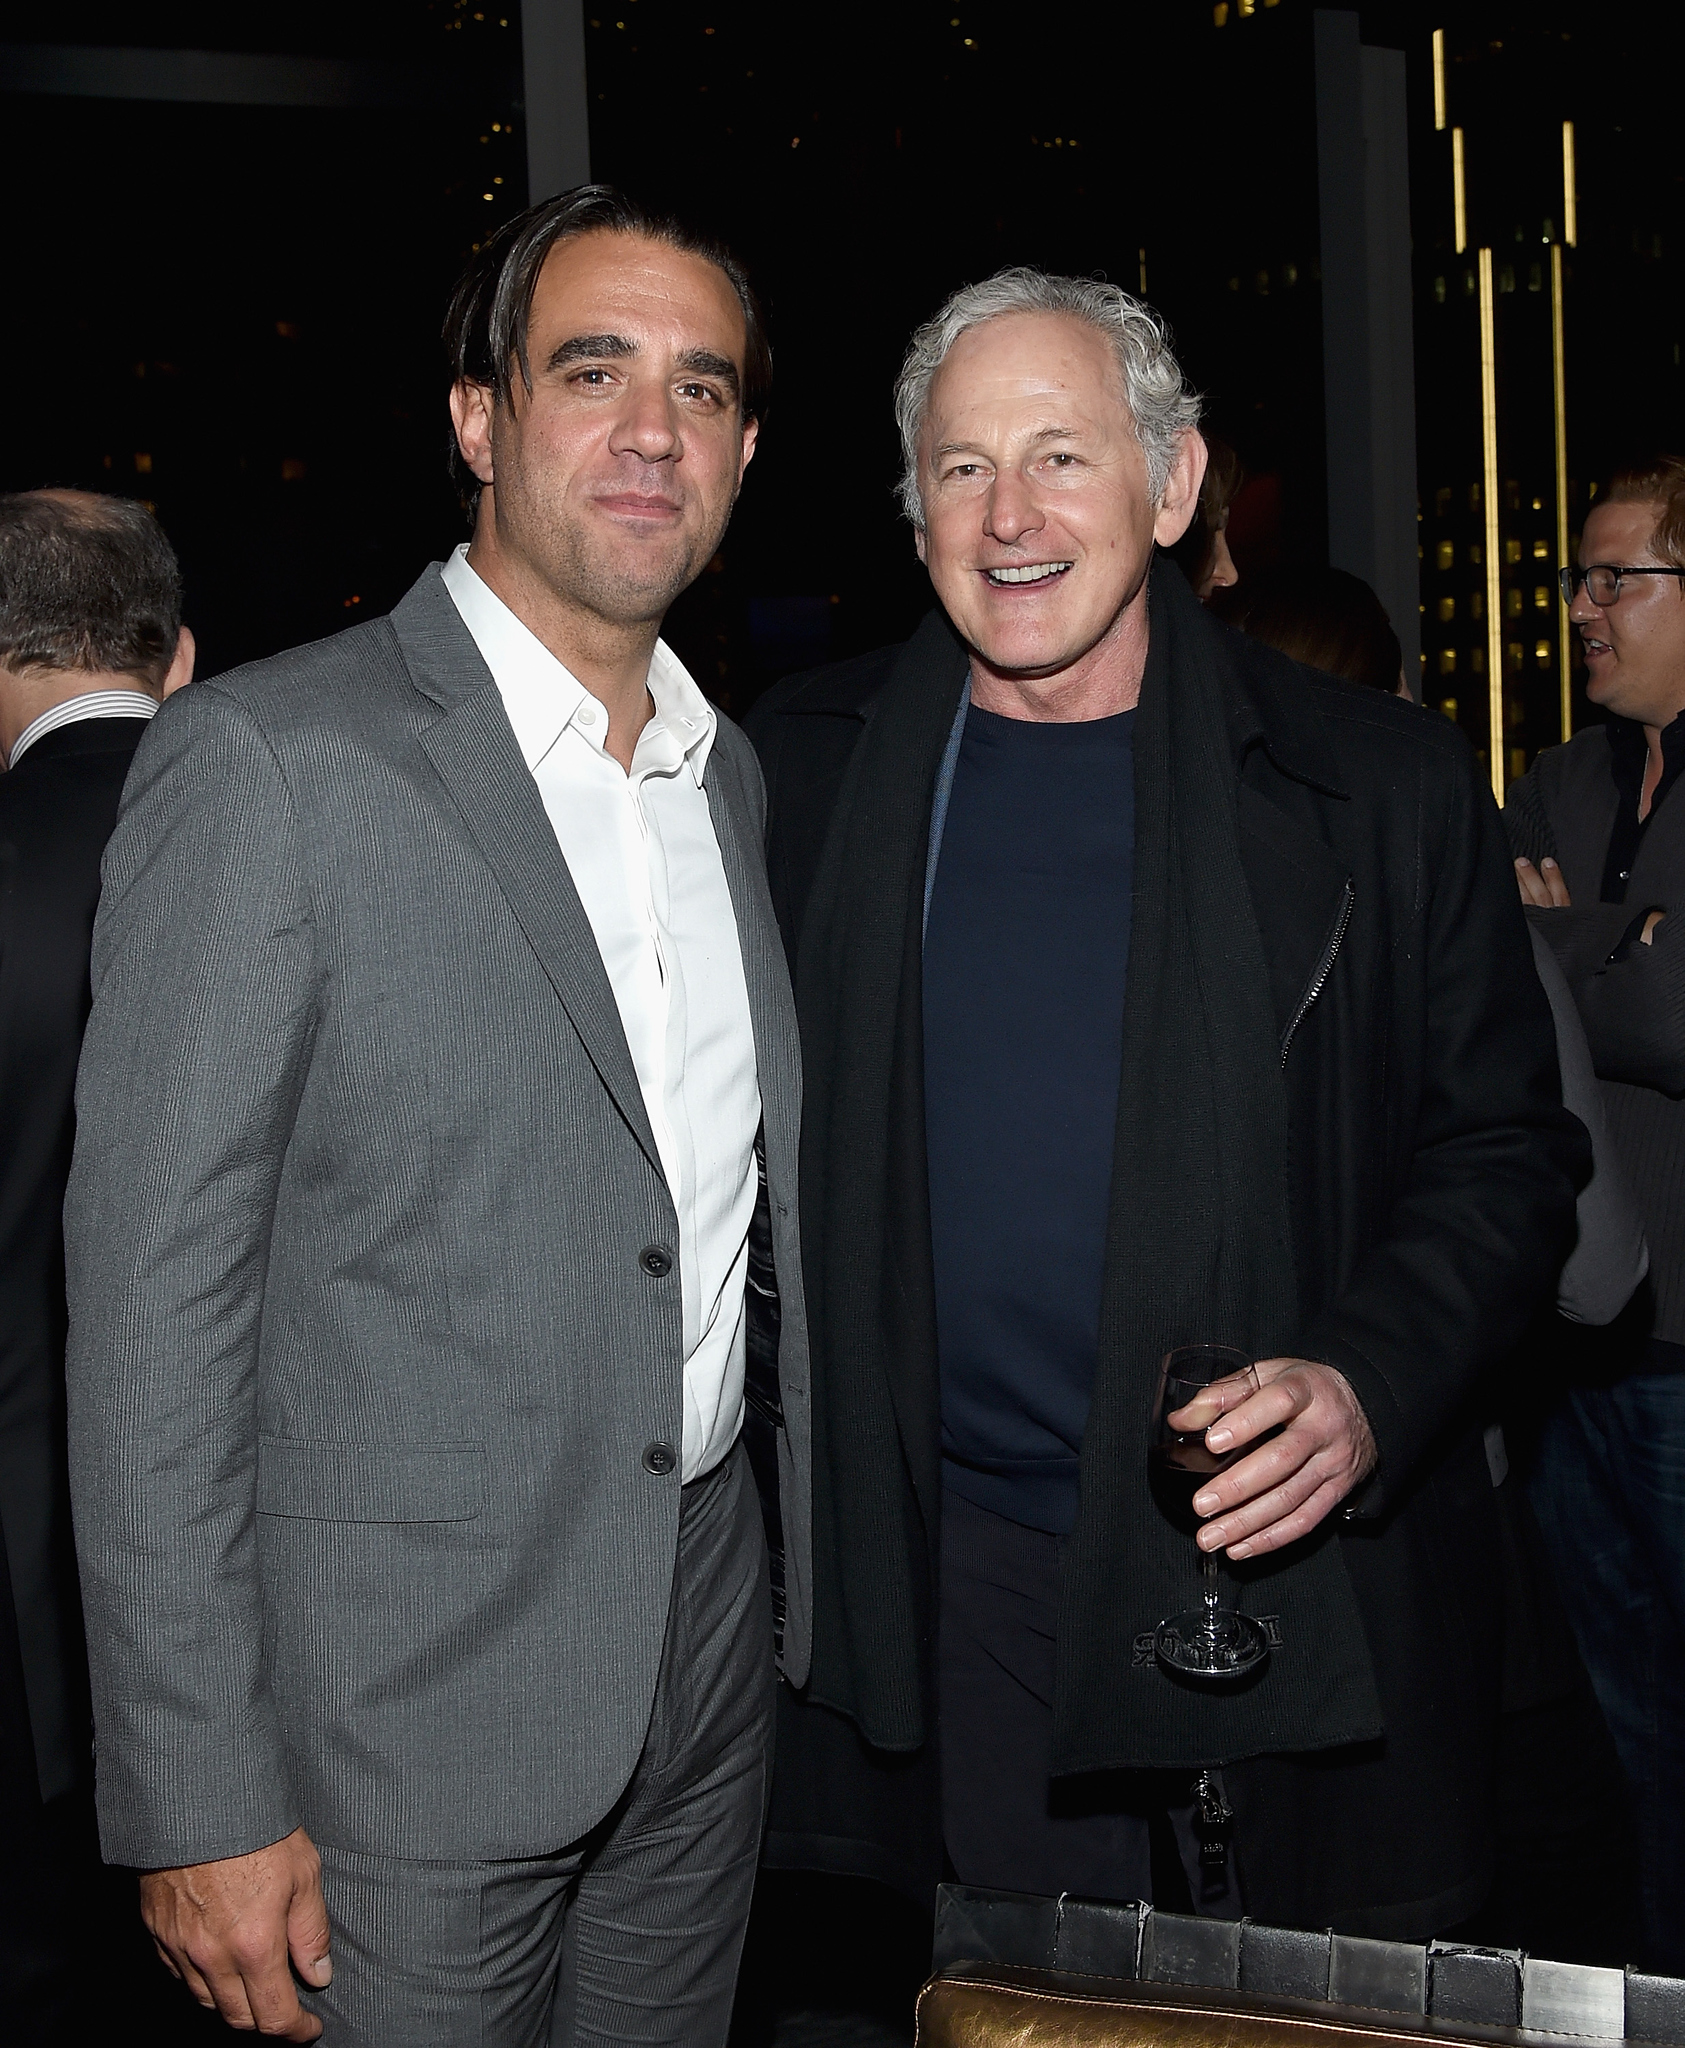 Victor Garber and Bobby Cannavale at event of Denis Kolinsas (2015)